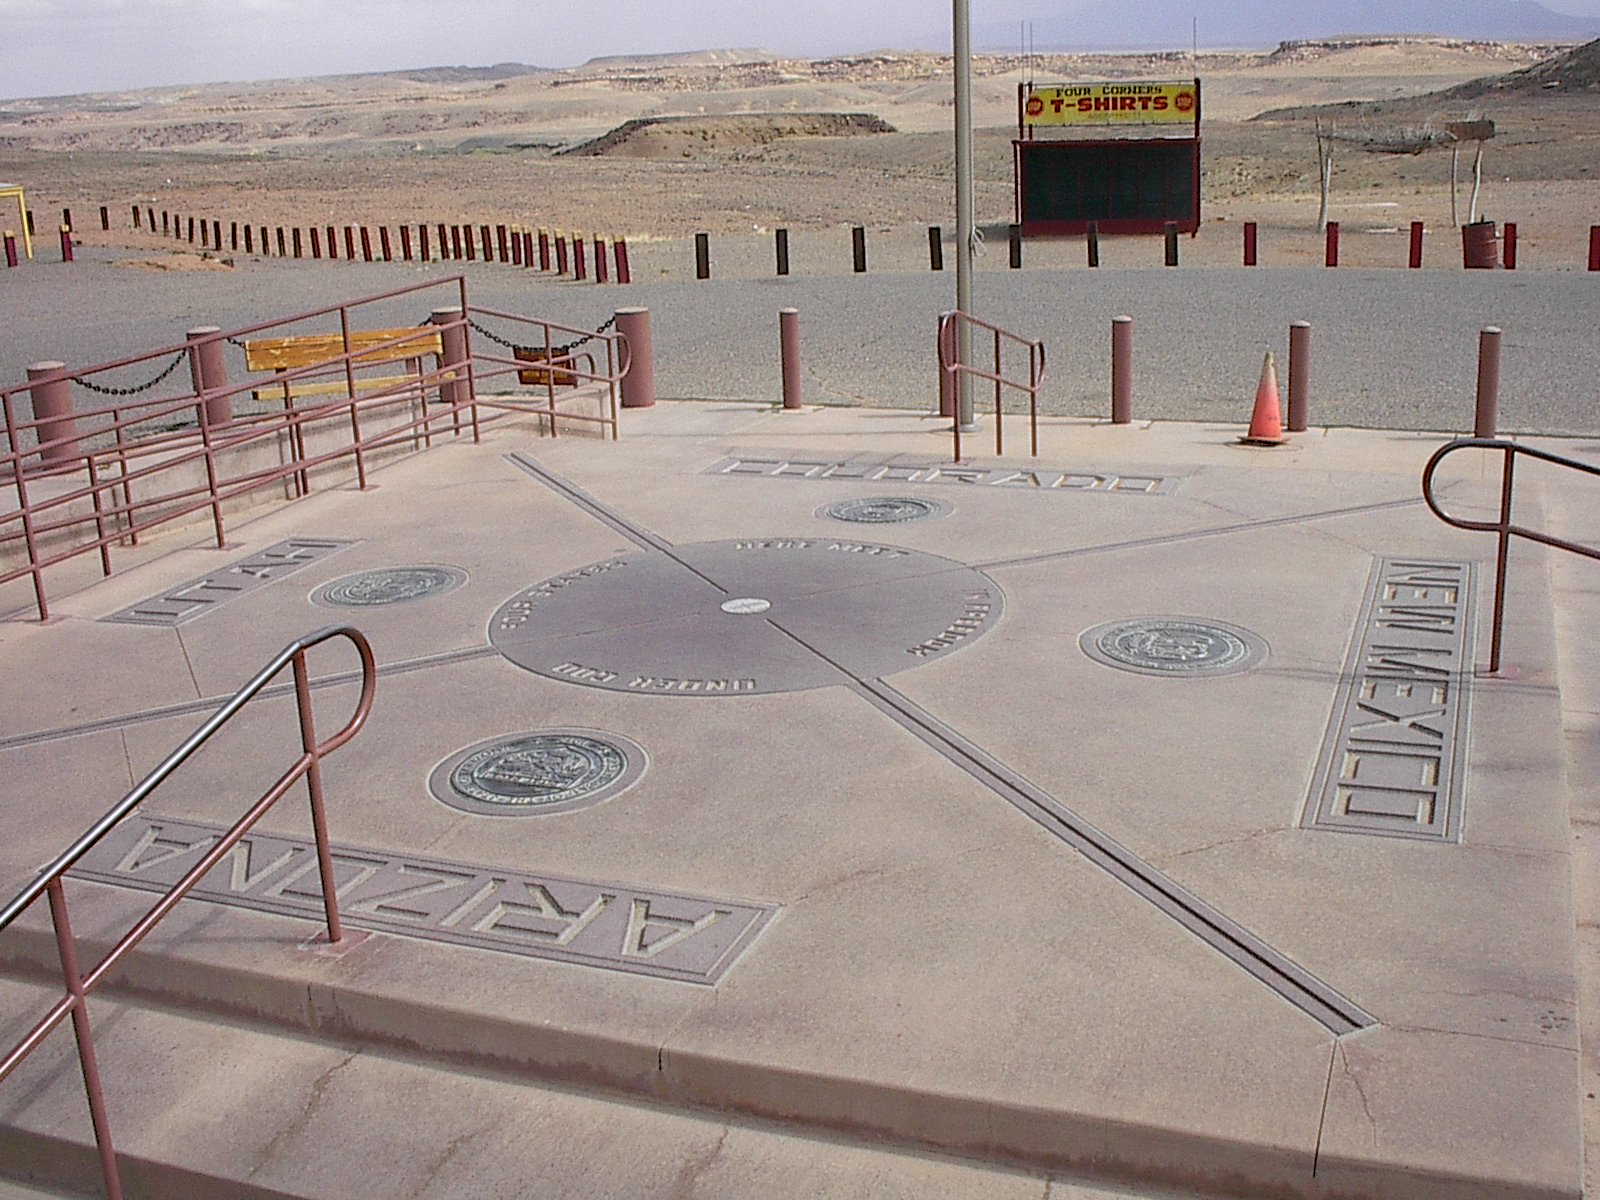 four corners - photo #1